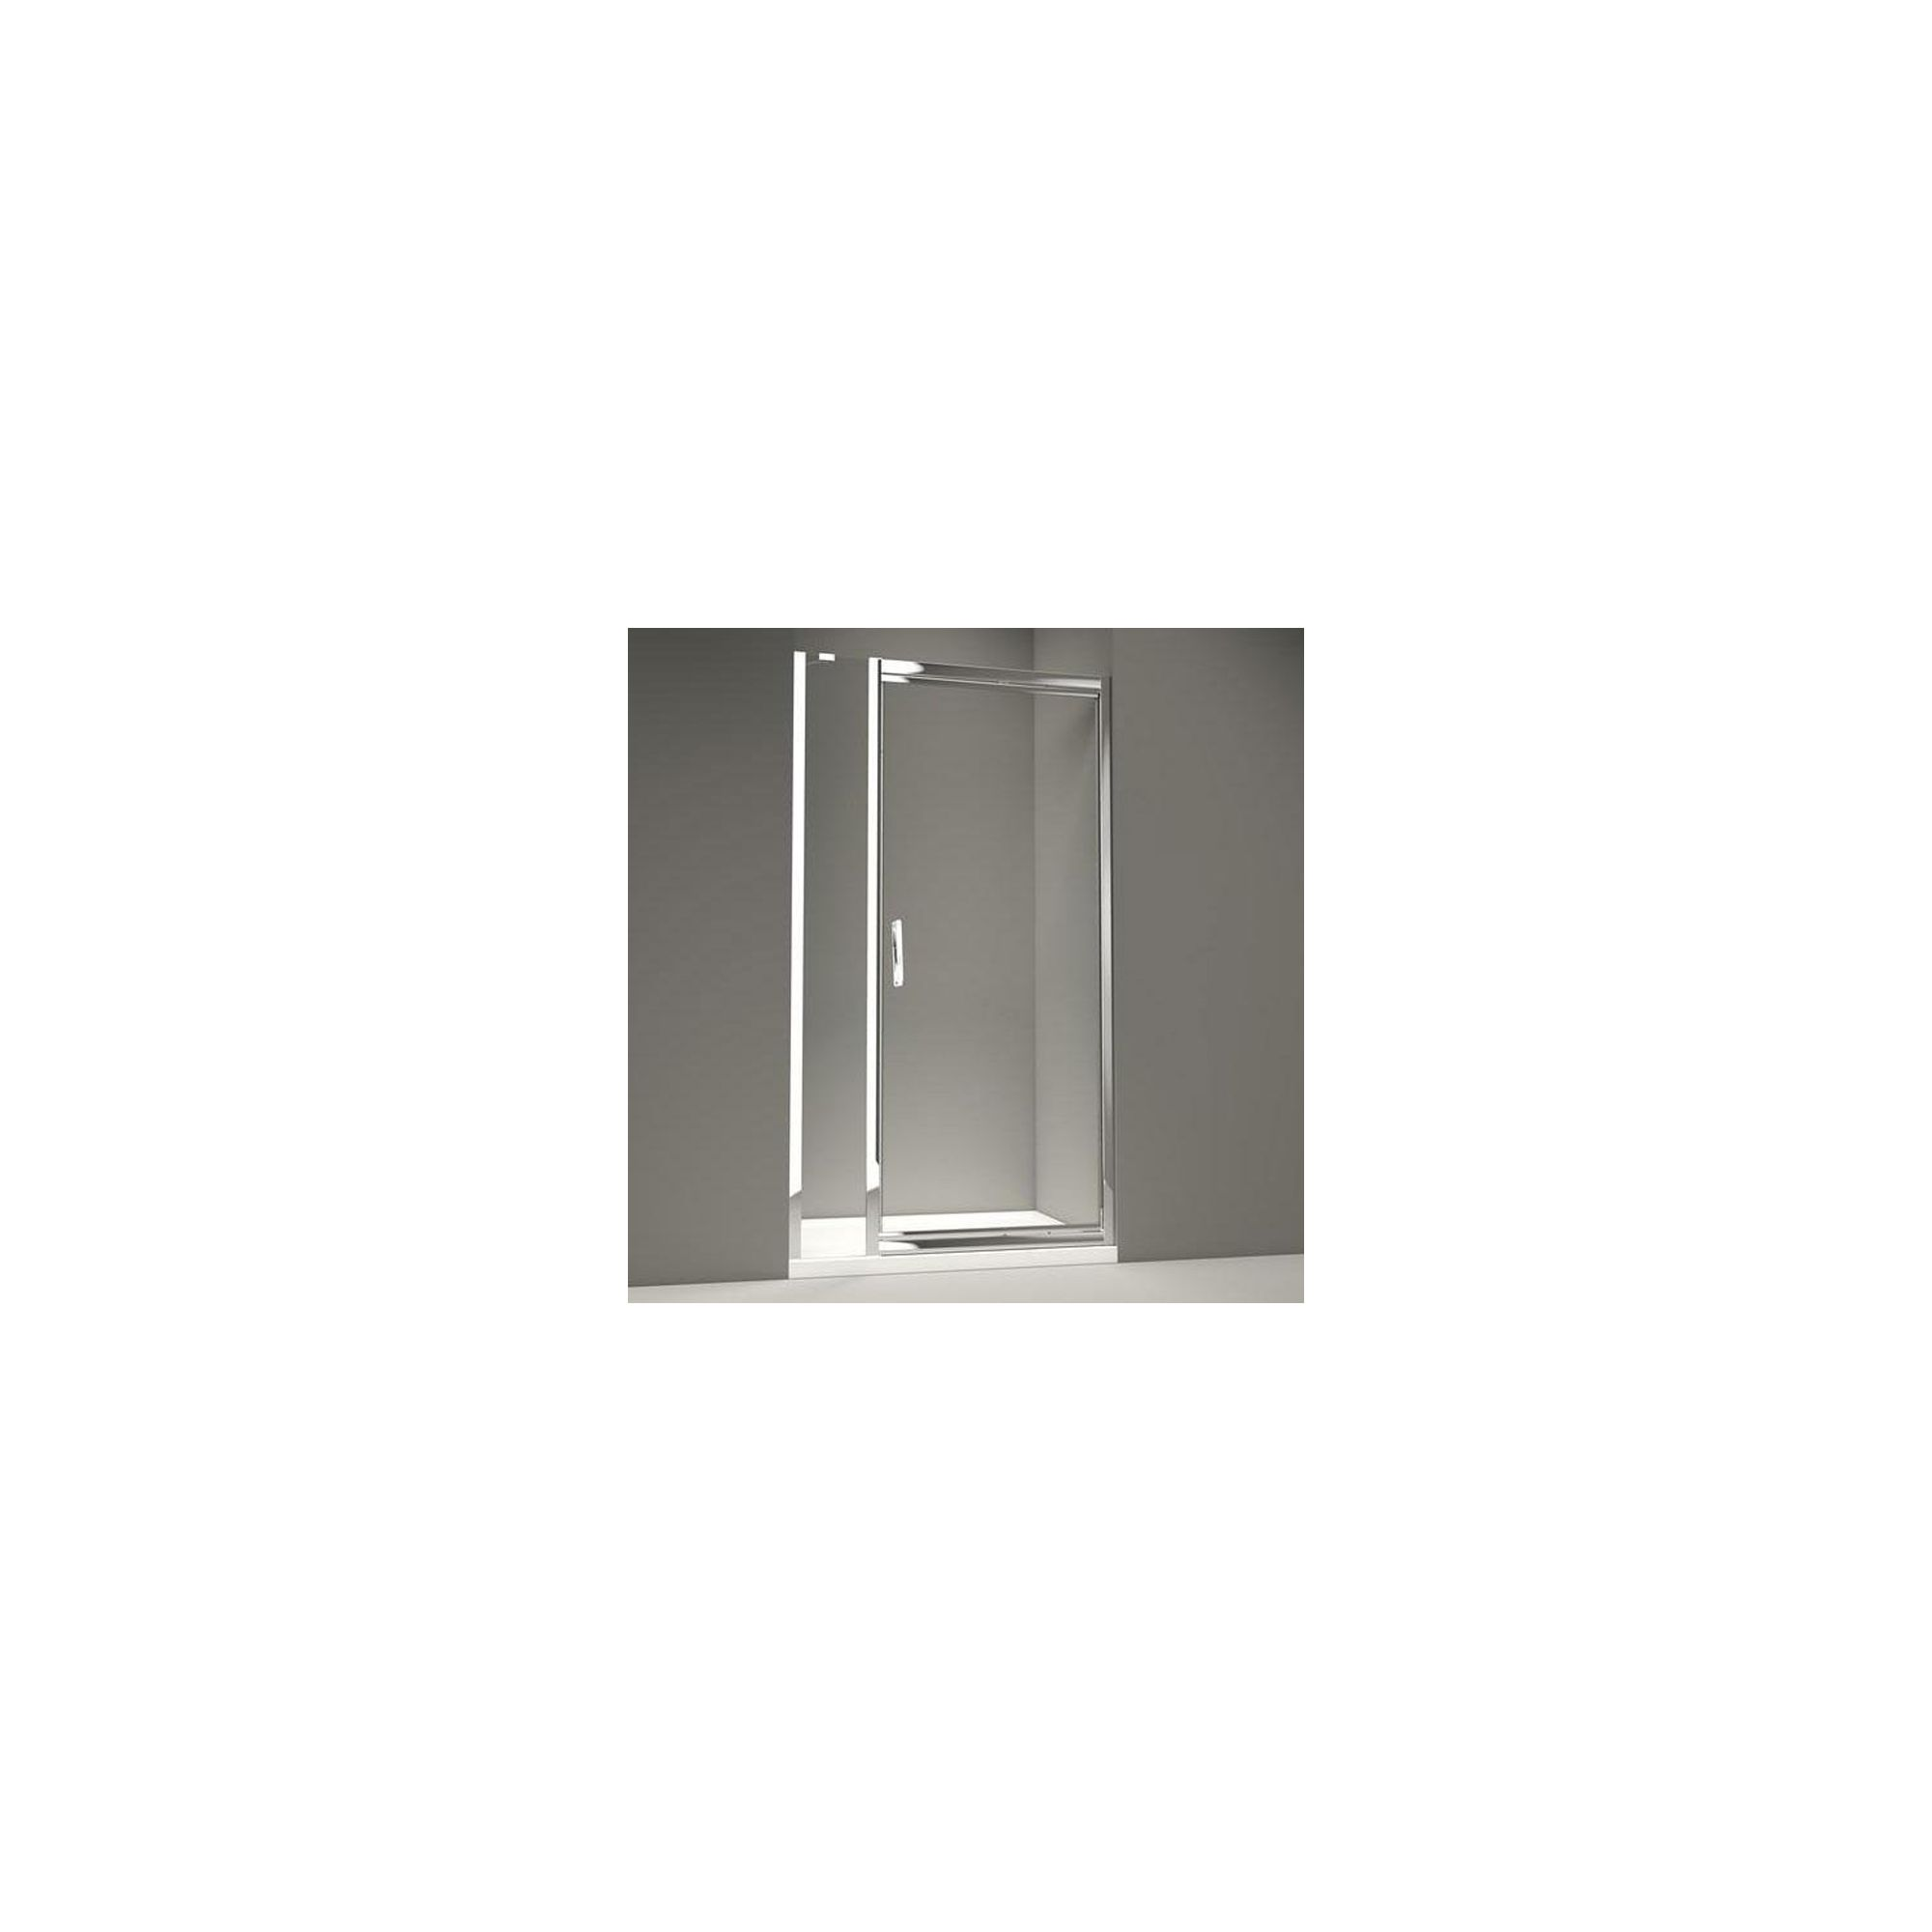 Merlyn Series 8 Inline Infold Shower Door, 900mm Wide, Chrome Frame, 8mm Glass at Tesco Direct